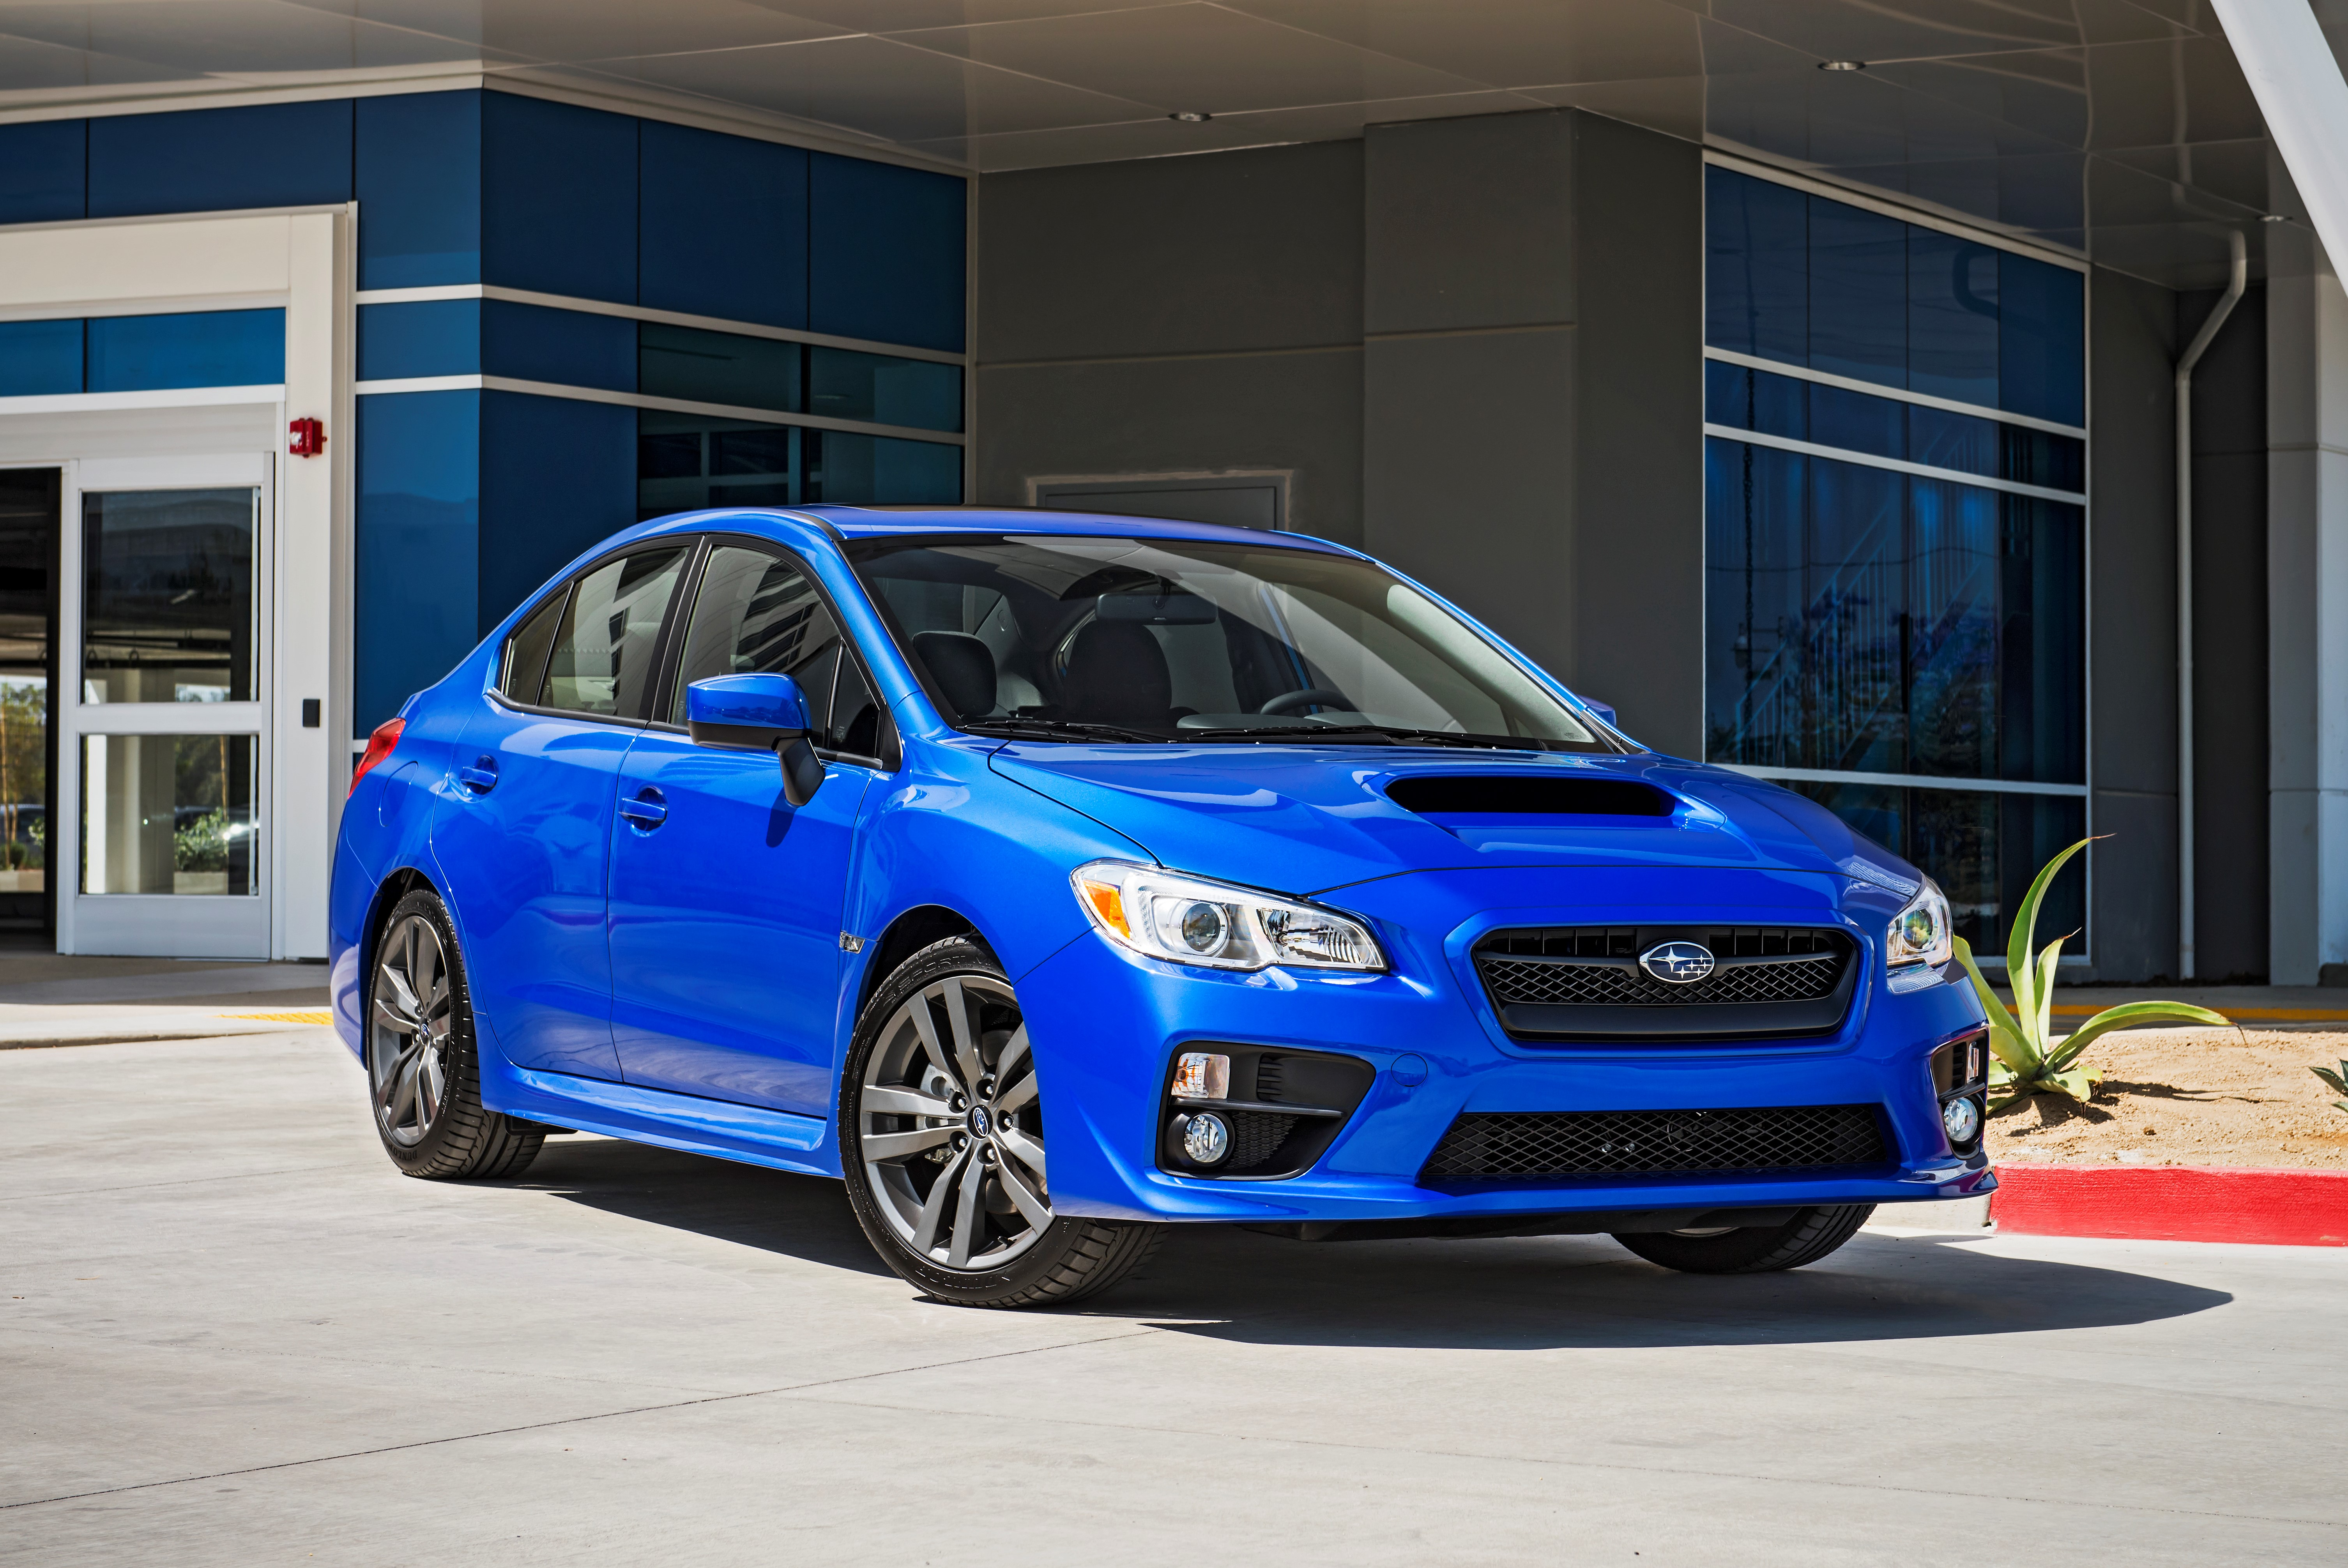 2016 subaru wrx sti and wrx s offer starlink infotainment and eyesight driver assist technology. Black Bedroom Furniture Sets. Home Design Ideas